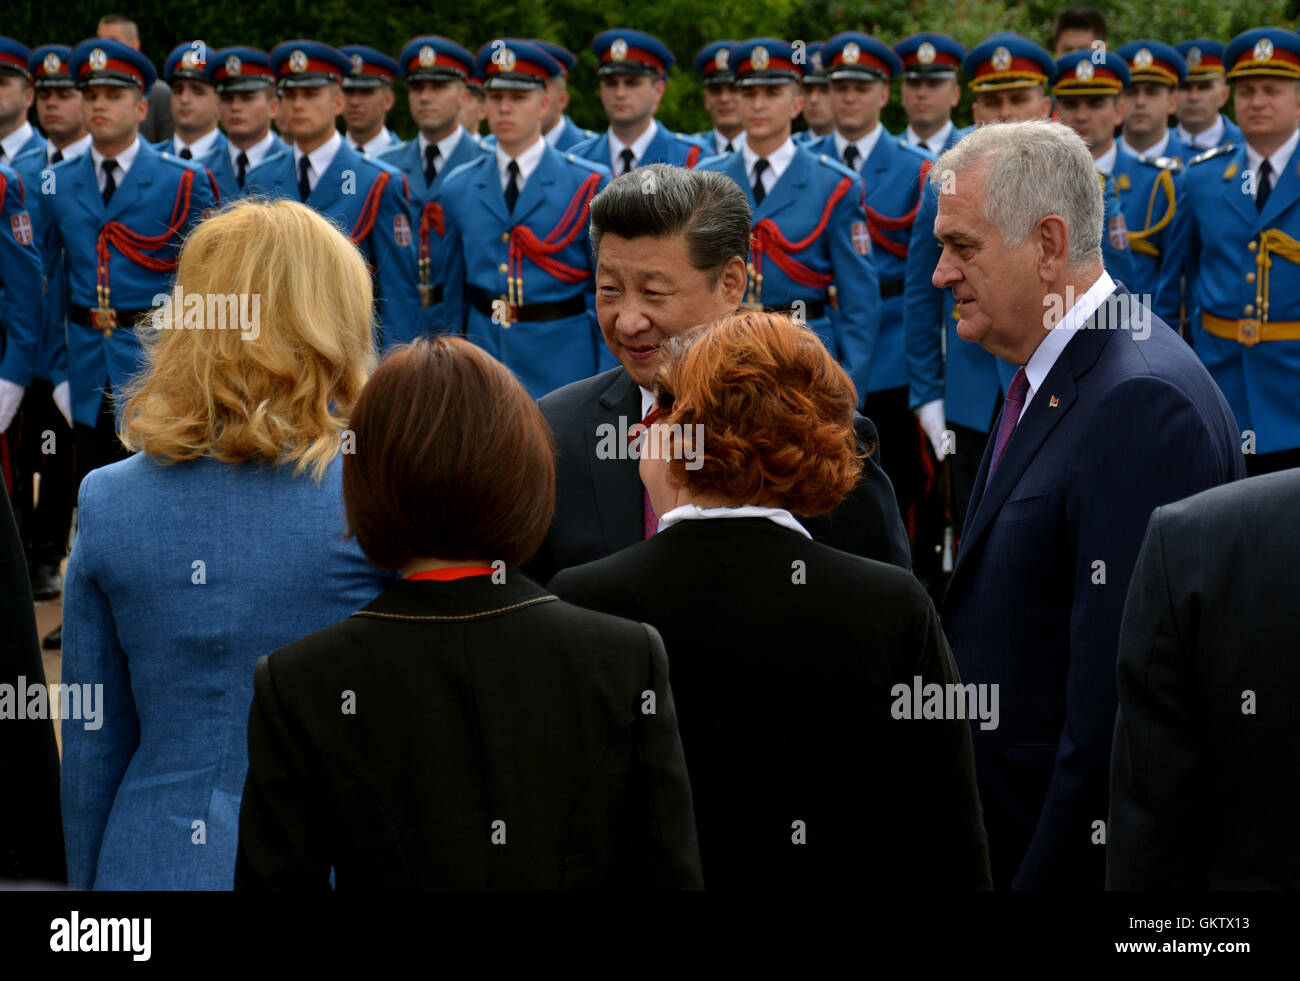 Belgrade, Serbia. 18th June, 2016. President of the People's Republic of China Xi Jinping on an official three-day - Stock Image